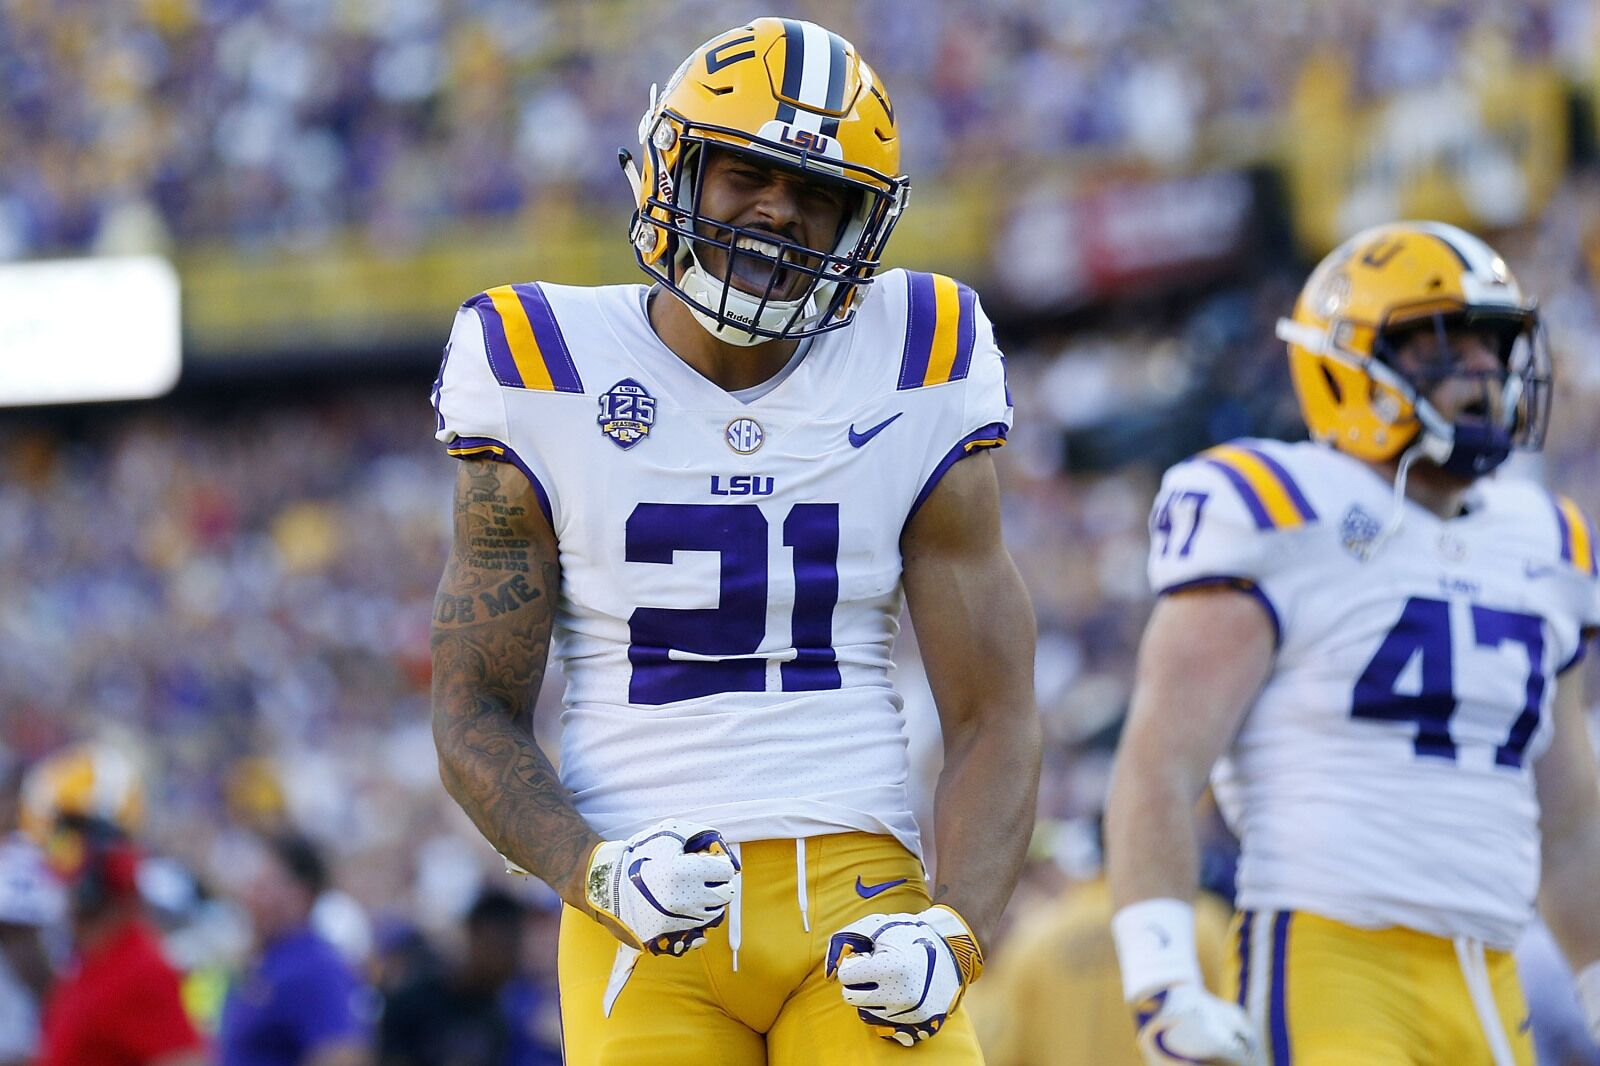 a947ef826 College football Week 7  Winners (LSU) and losers (Auburn)